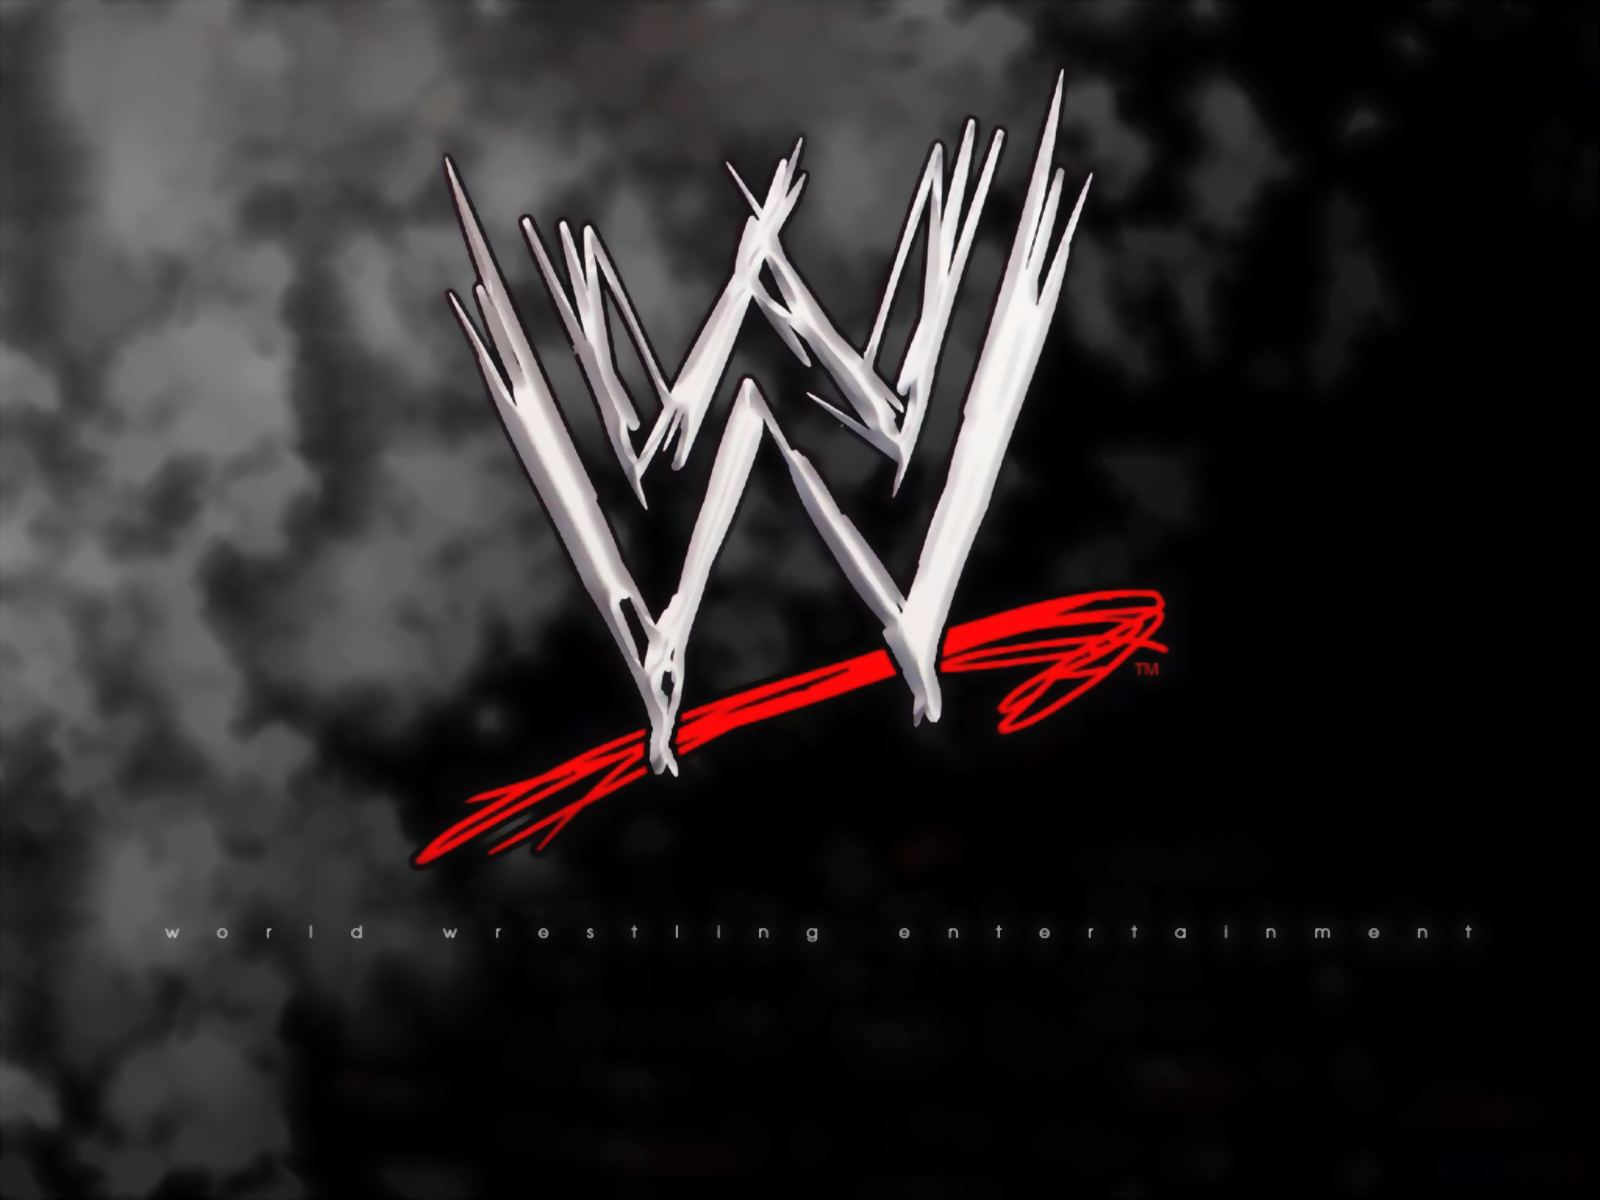 WWE logo wallpapers WWE SuperstarsWWE wallpapersWWE pictures 1600x1200